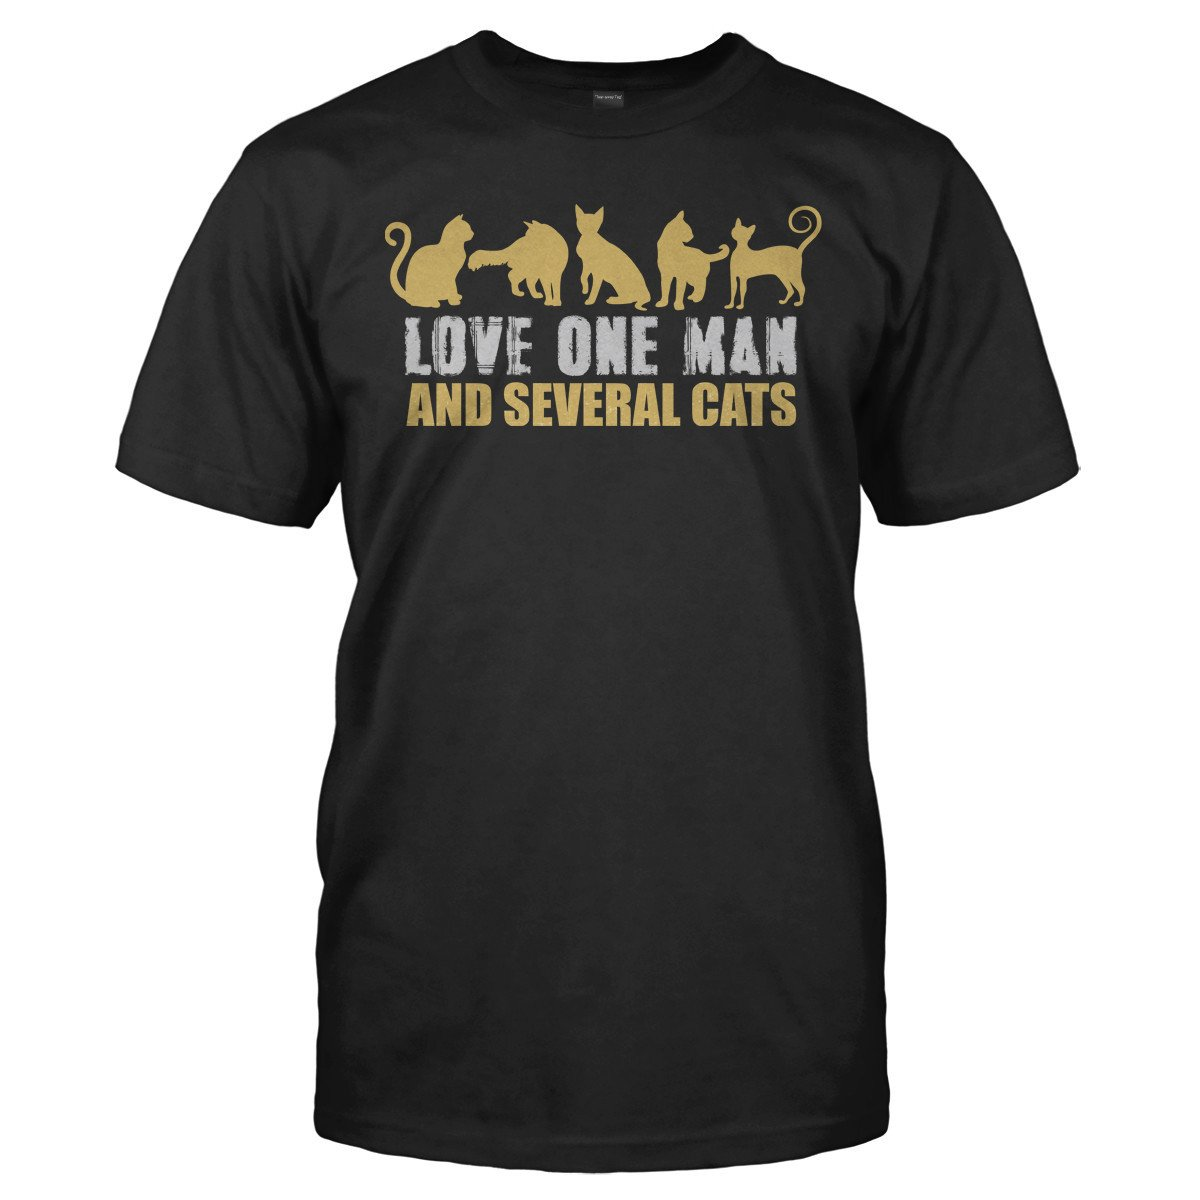 Love One Man and Several Cats - T Shirt